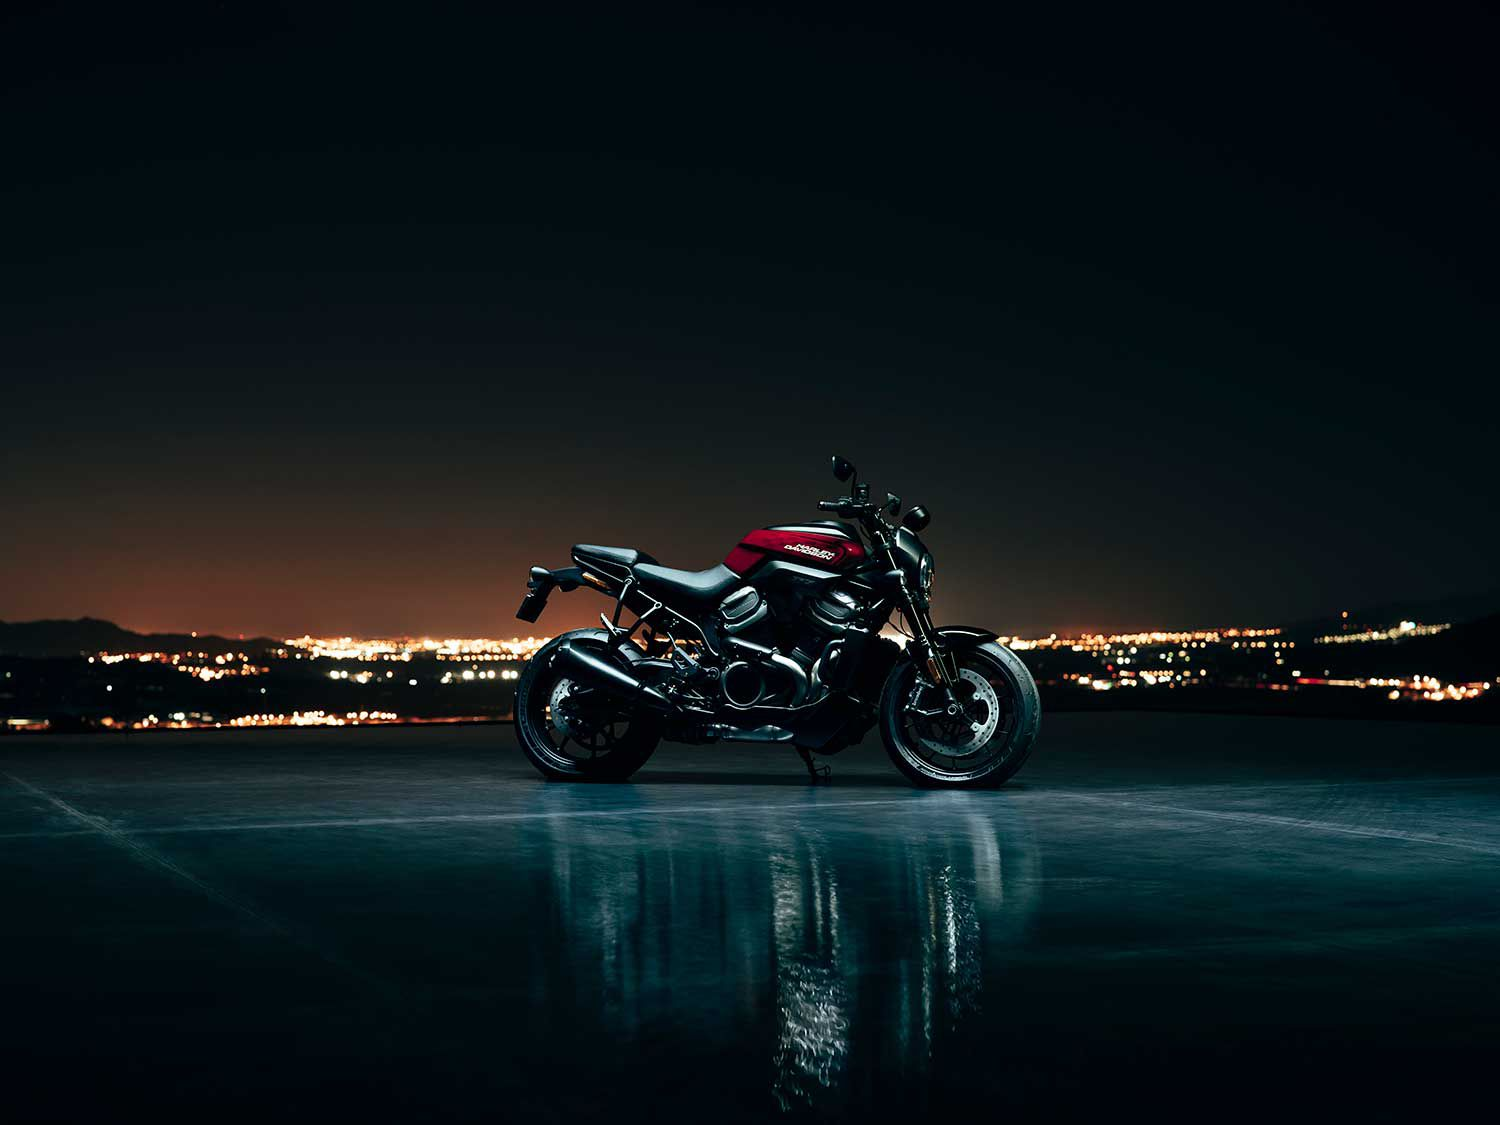 <h2>2021 Harley-Davidson Bronx</h2> </br> Harley-Davidson's 2021 Bronx streetfighter will launch late 2020 and bring the Bar and Shield brand into another category of motorcycle.